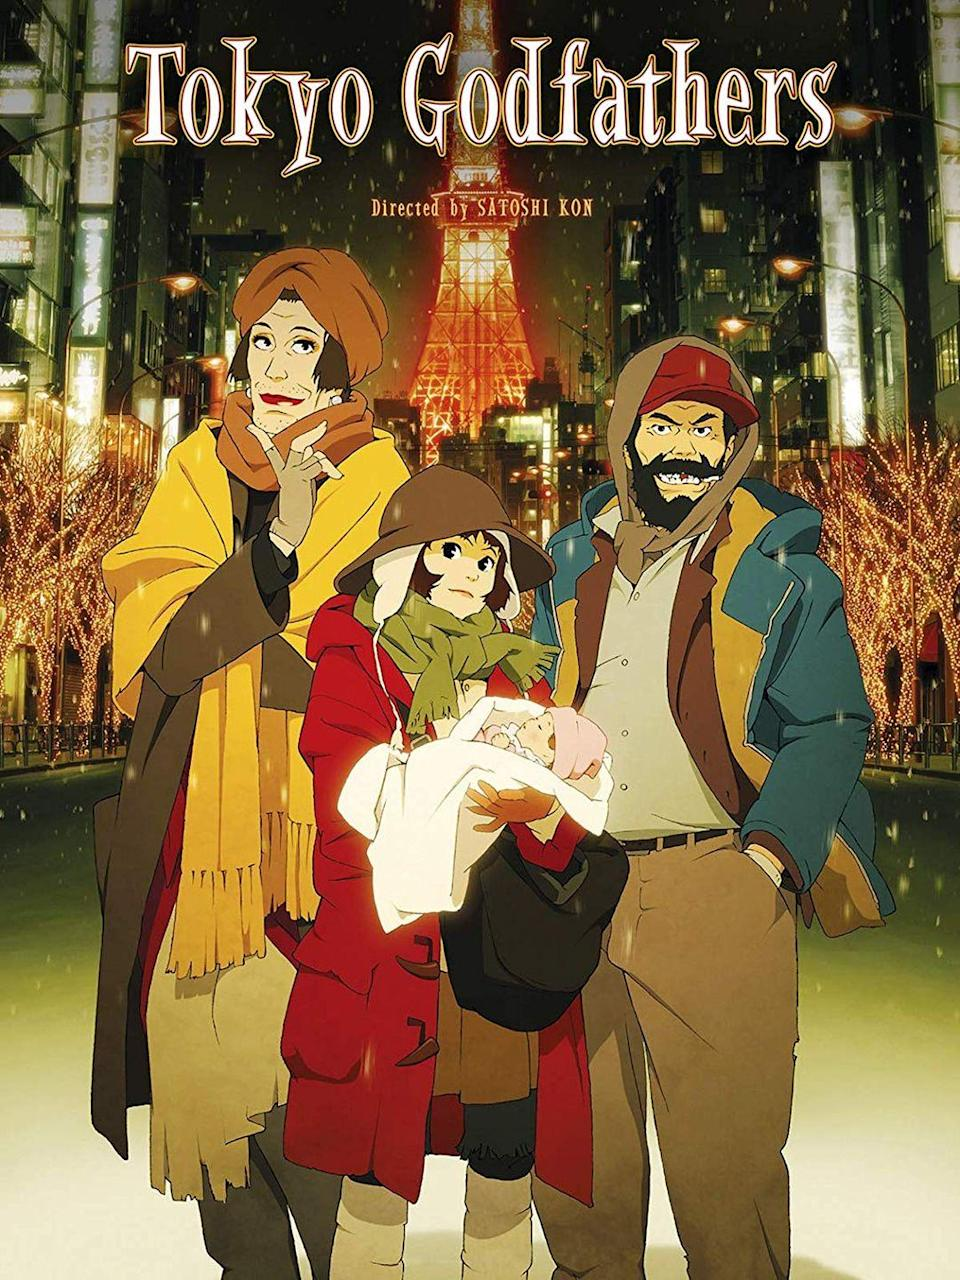 """<p>In this anime reinterpretation of the Nativity story, a homeless group in Tokyo stumbles across an abandoned baby on Christmas Eve. <em>Tokyo Godfathers </em>is a surprisingly funny tale of friendship, family, and the universal desire to belong.</p><p><a class=""""link rapid-noclick-resp"""" href=""""https://www.amazon.com/Tokyo-Godfathers-Sh%C3%B4z%C3%B4-%C3%8Ezuka/dp/B0001EFTVA?tag=syn-yahoo-20&ascsubtag=%5Bartid%7C10055.g.1315%5Bsrc%7Cyahoo-us"""" rel=""""nofollow noopener"""" target=""""_blank"""" data-ylk=""""slk:WATCH NOW"""">WATCH NOW</a></p>"""